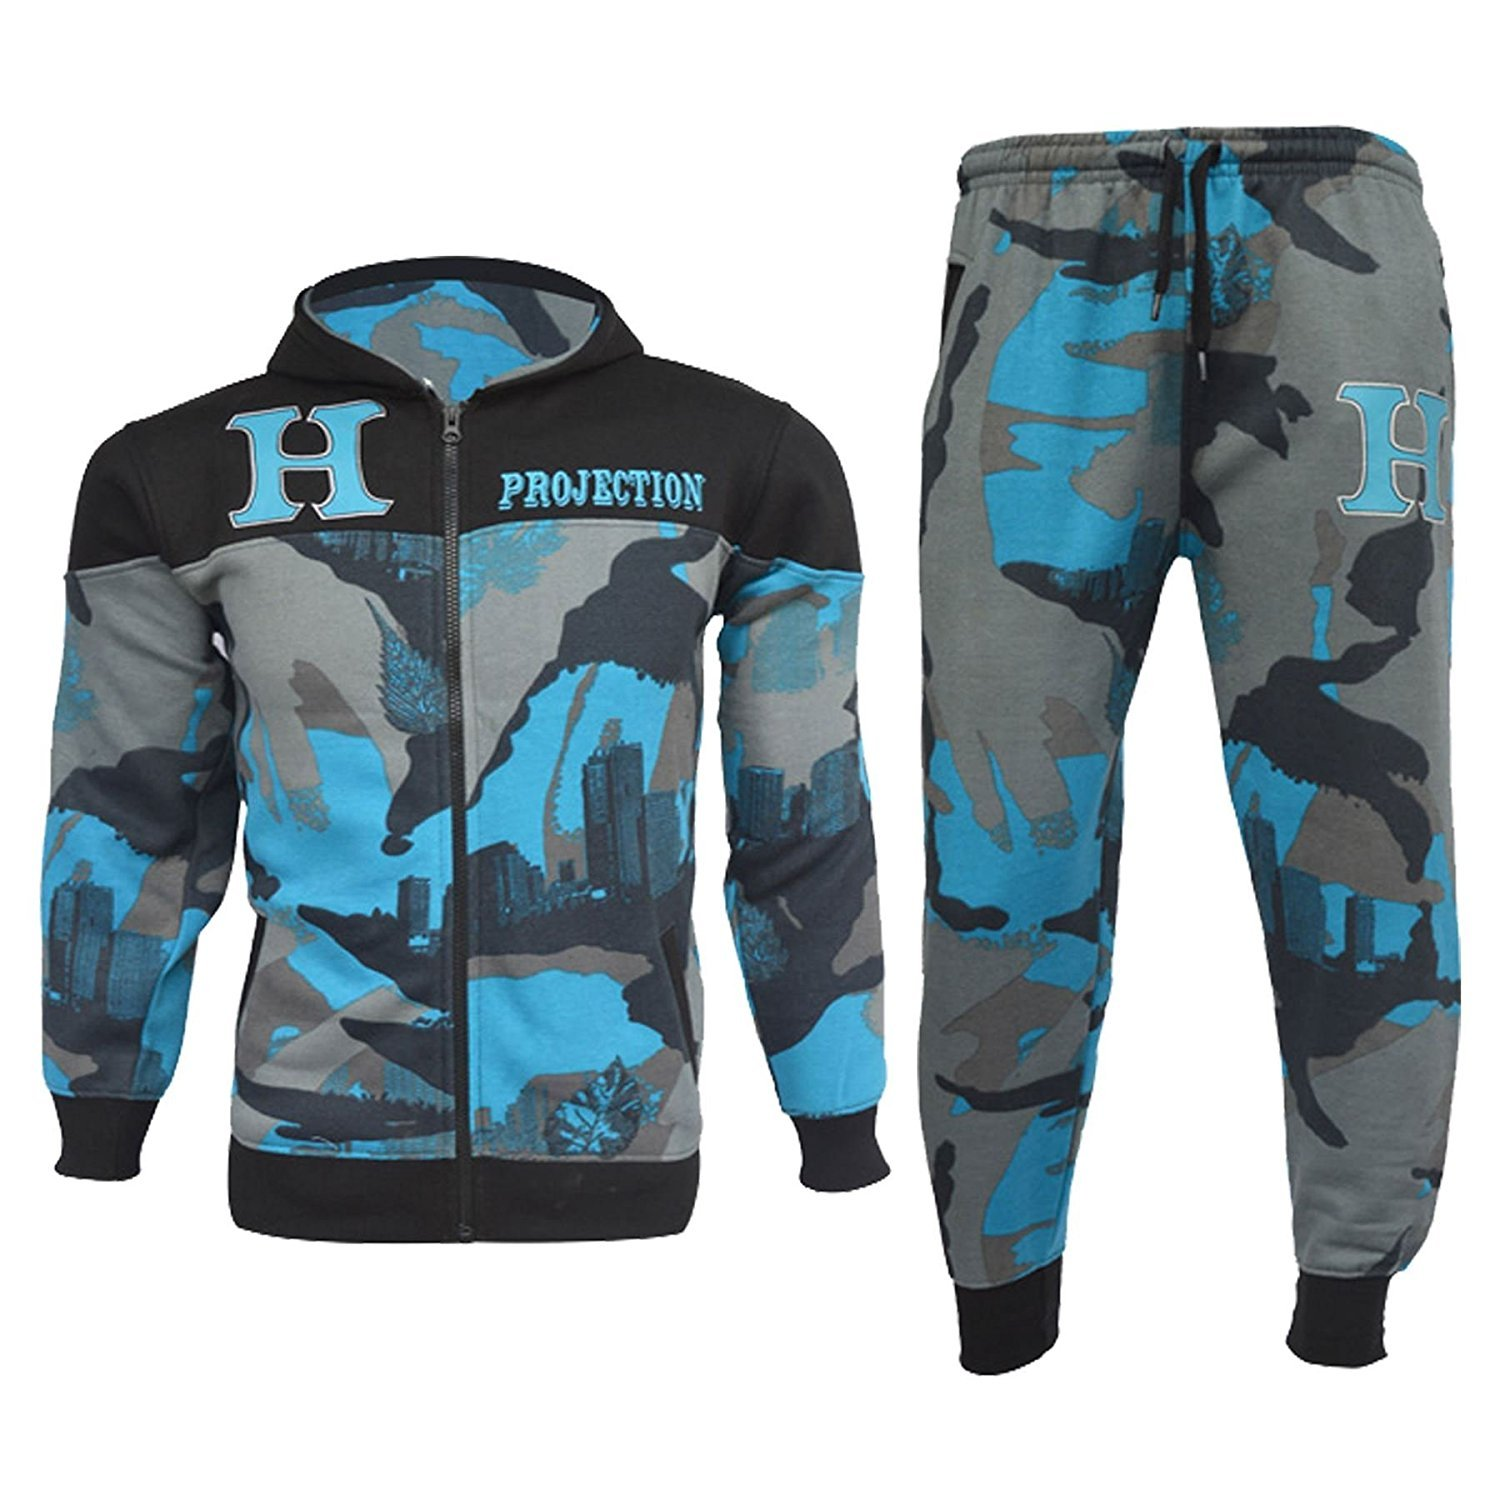 Star Trendz Kids Tracksuits Boys Girls HNL Projection Print Hoodie & Bottom Joggers Suit New Age 7-13 2015907